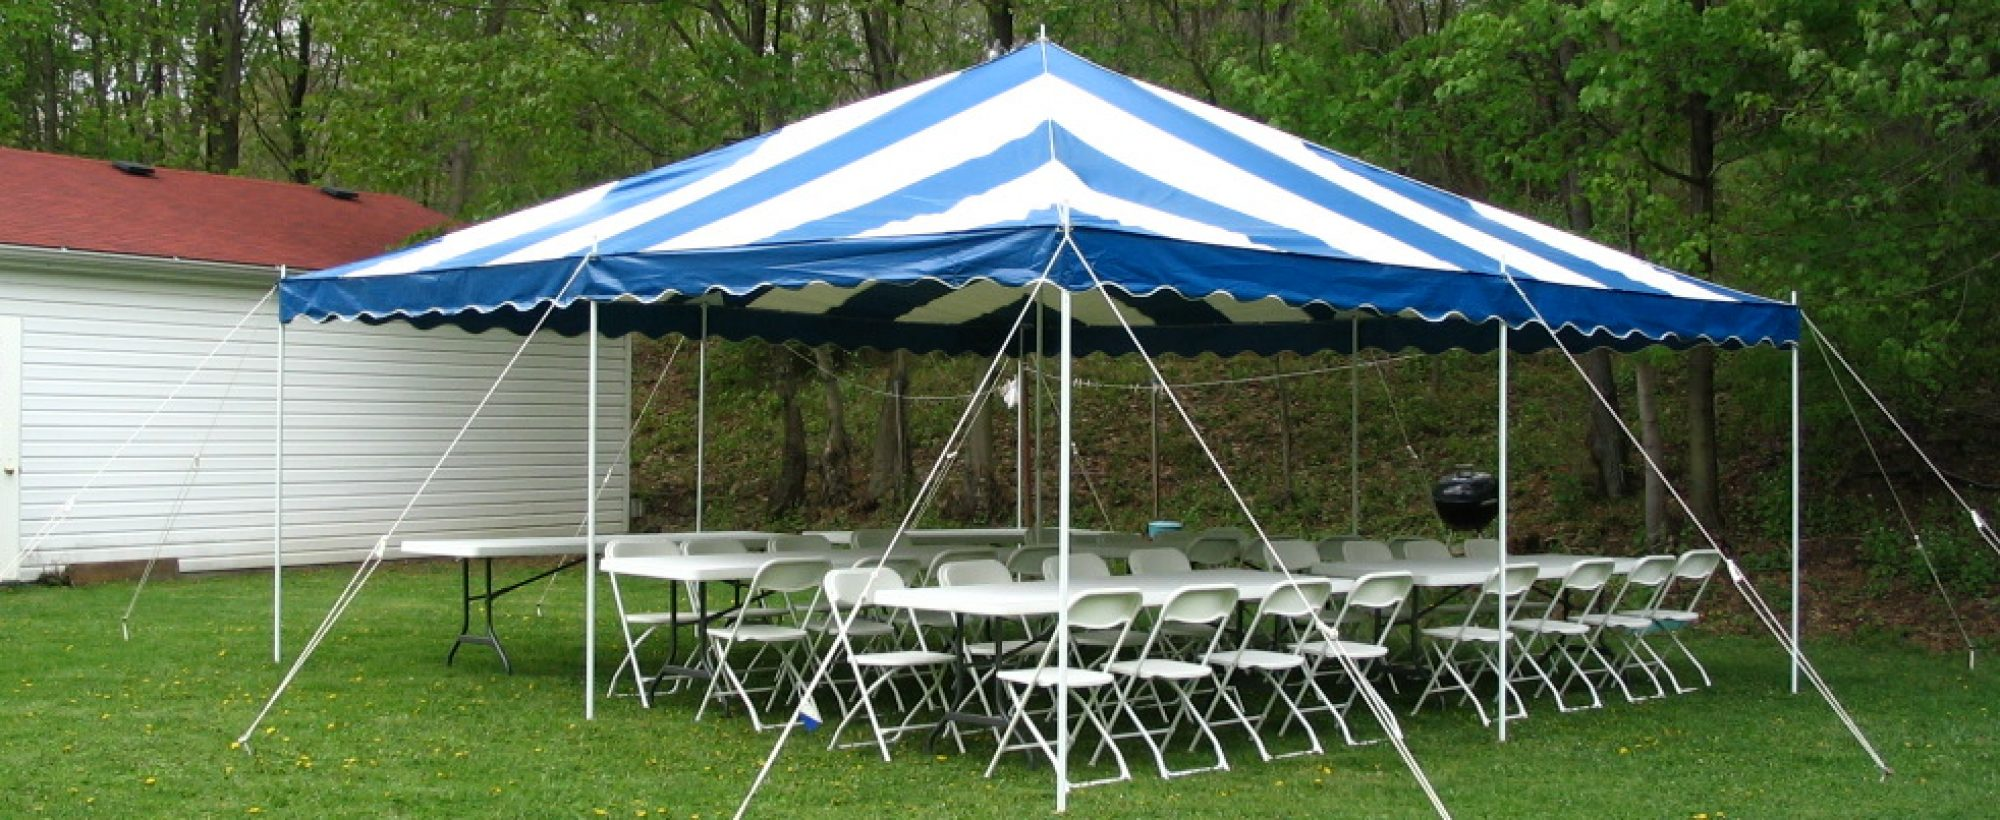 #1 Rentals -Tents, Tables and Chairs